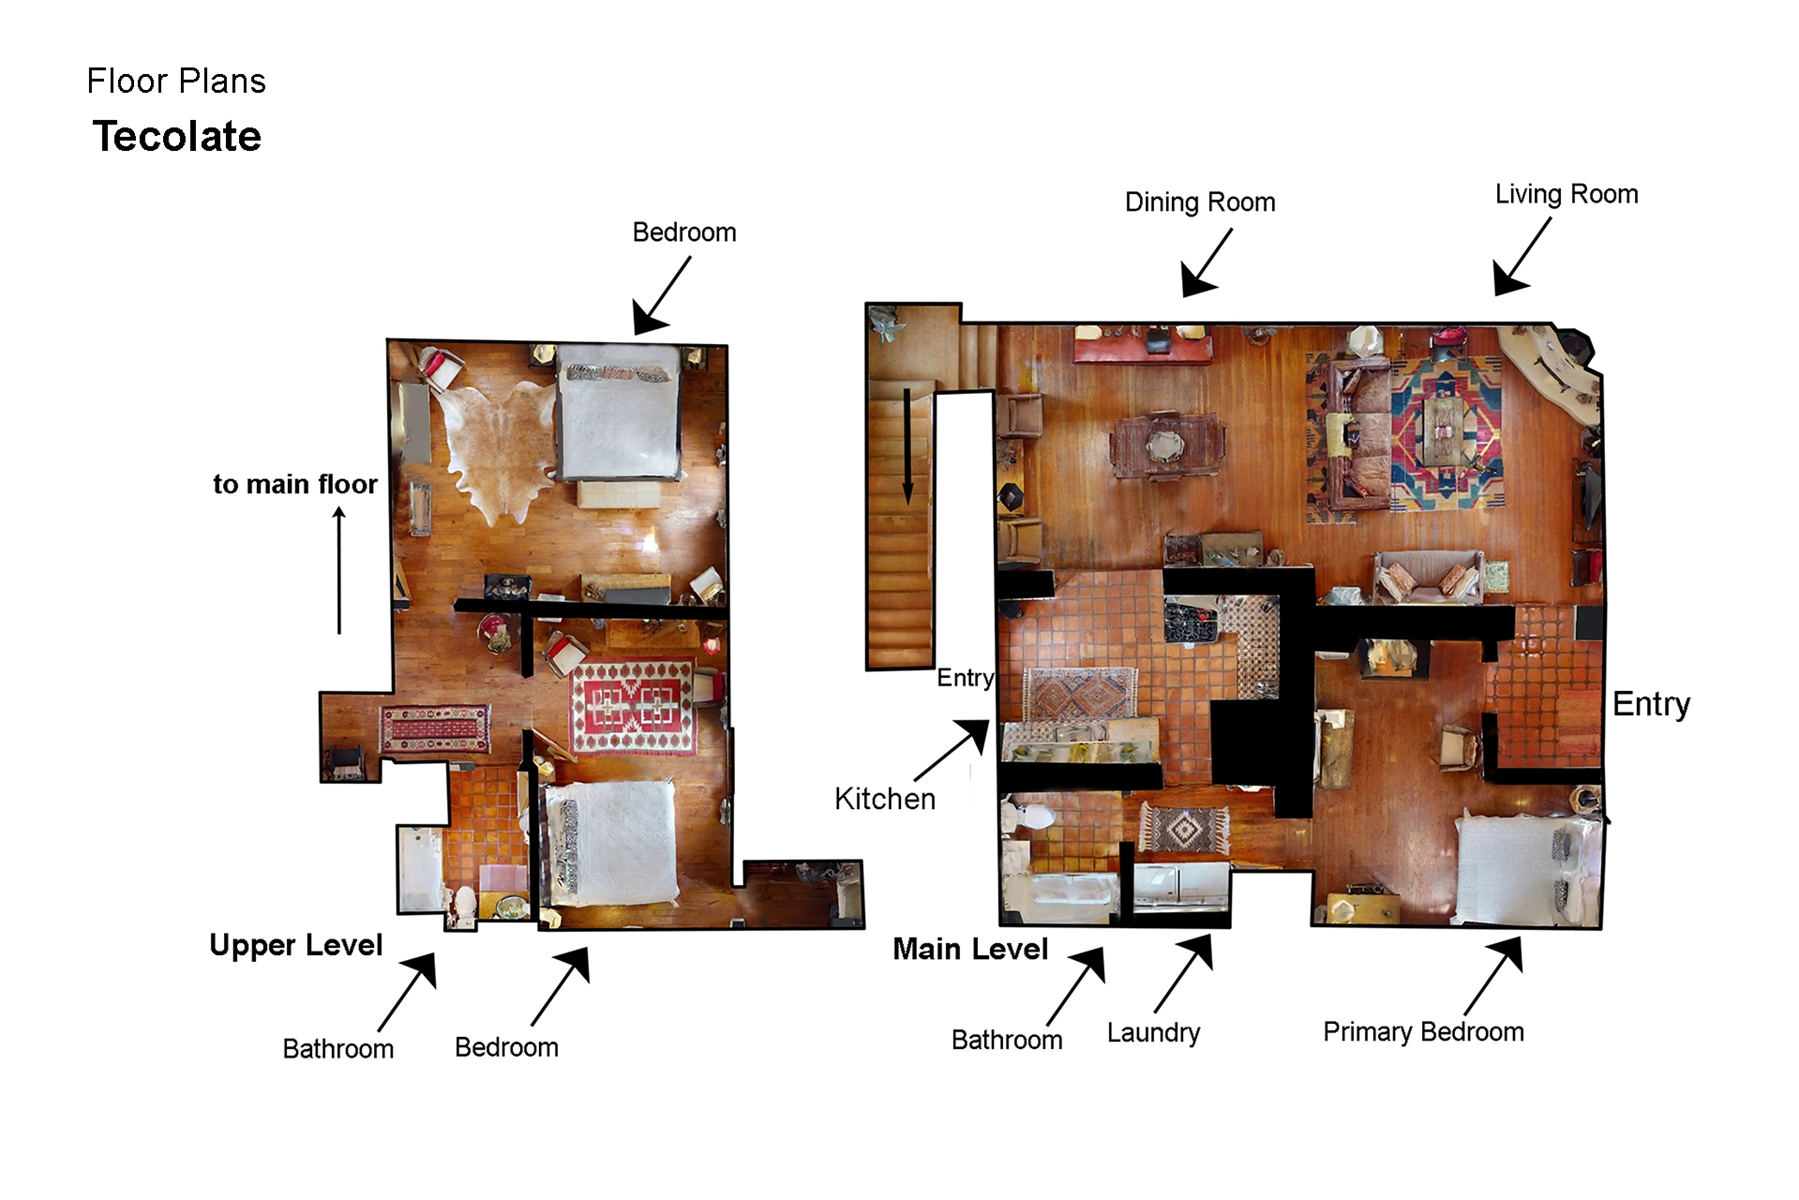 Floor Plan for Tecolote